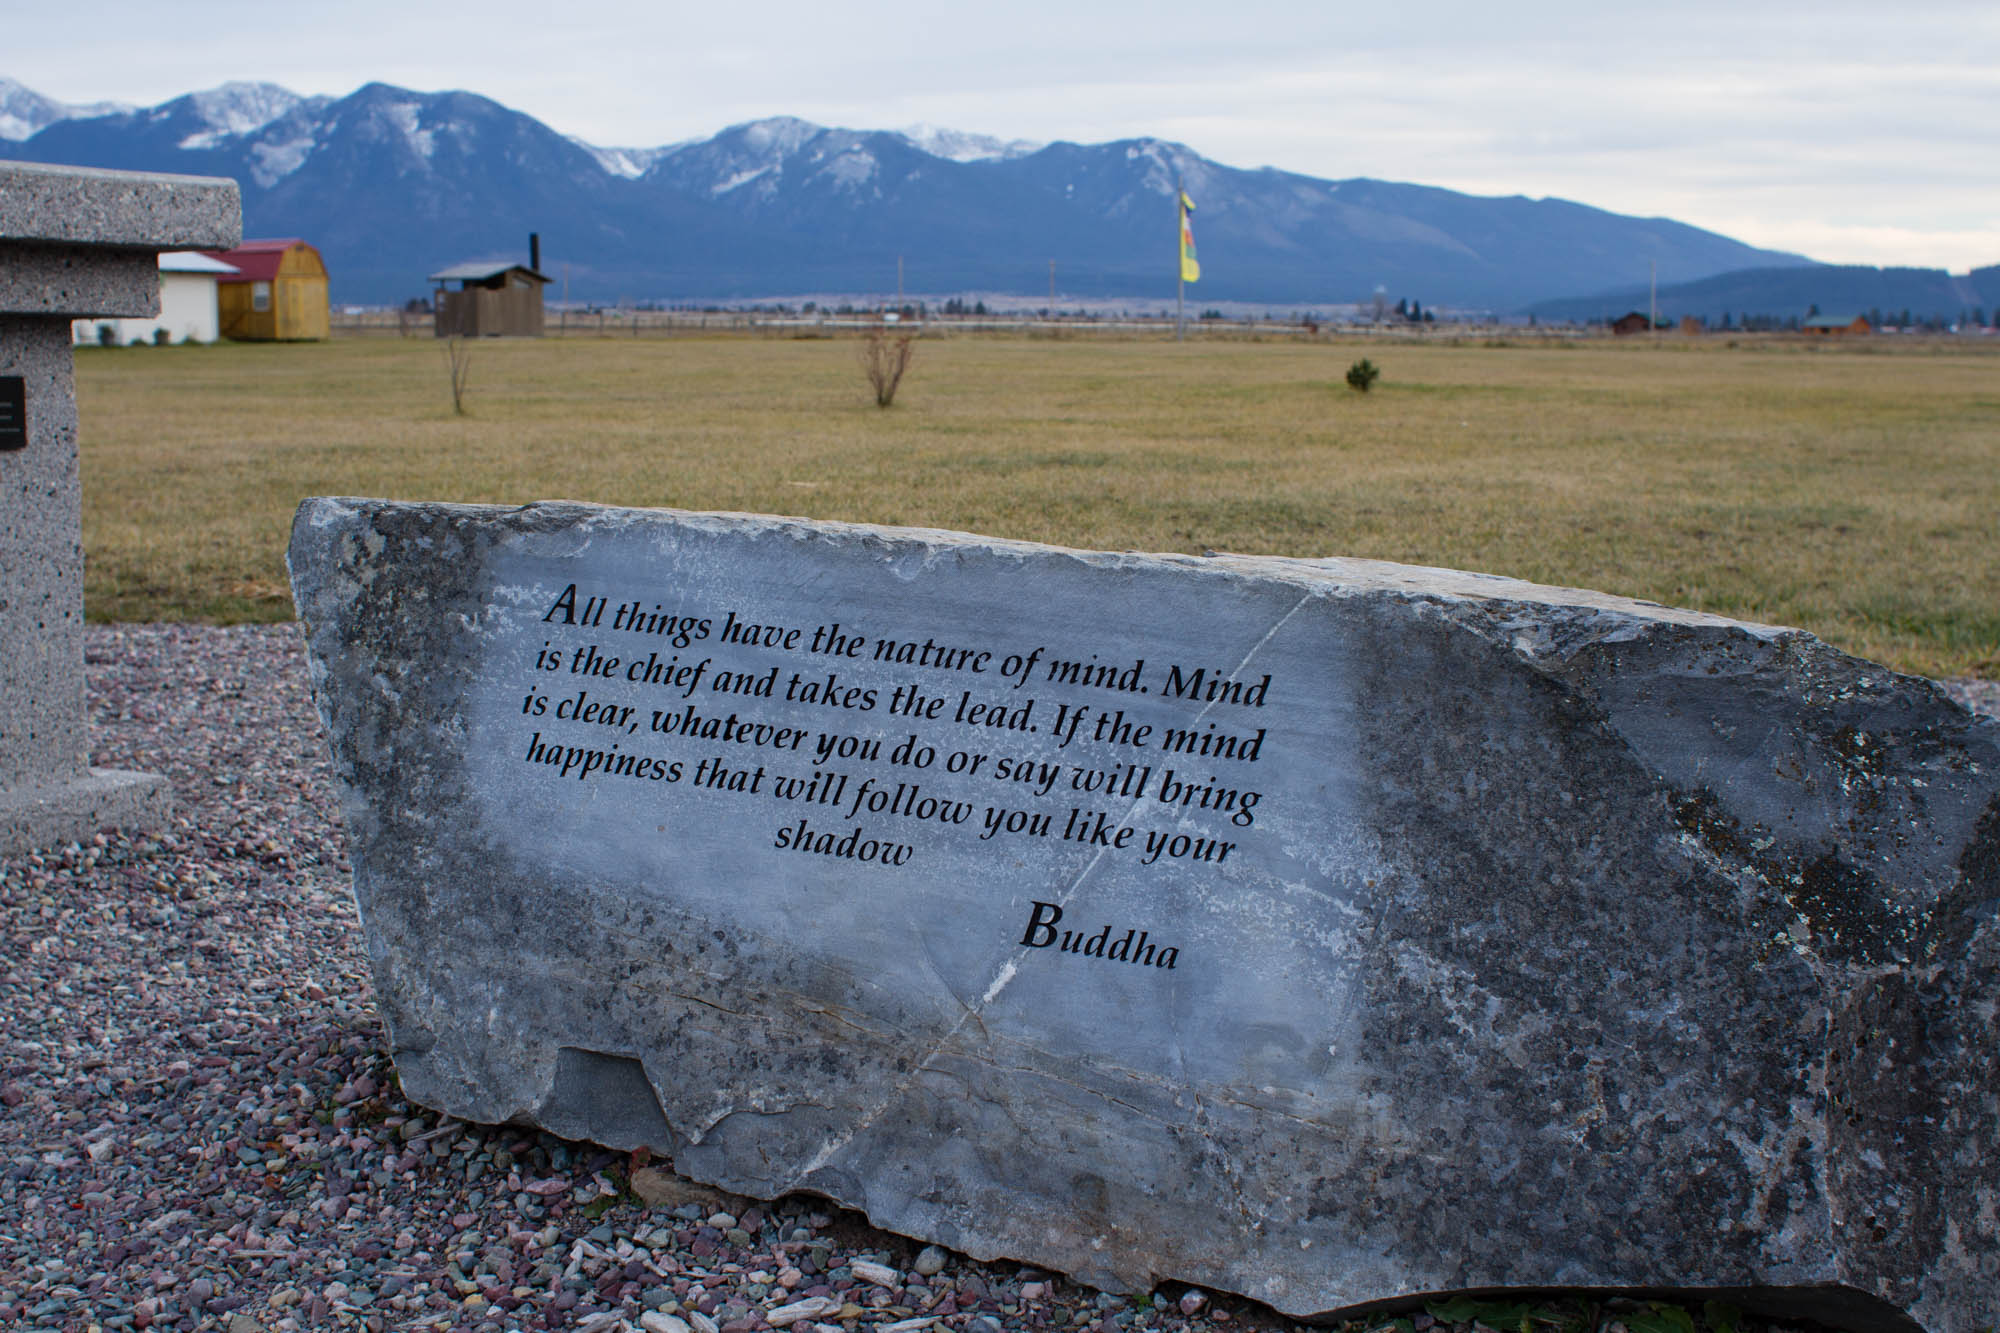 Week of Zen Quote - Garden of One Thousand Buddhas Montana